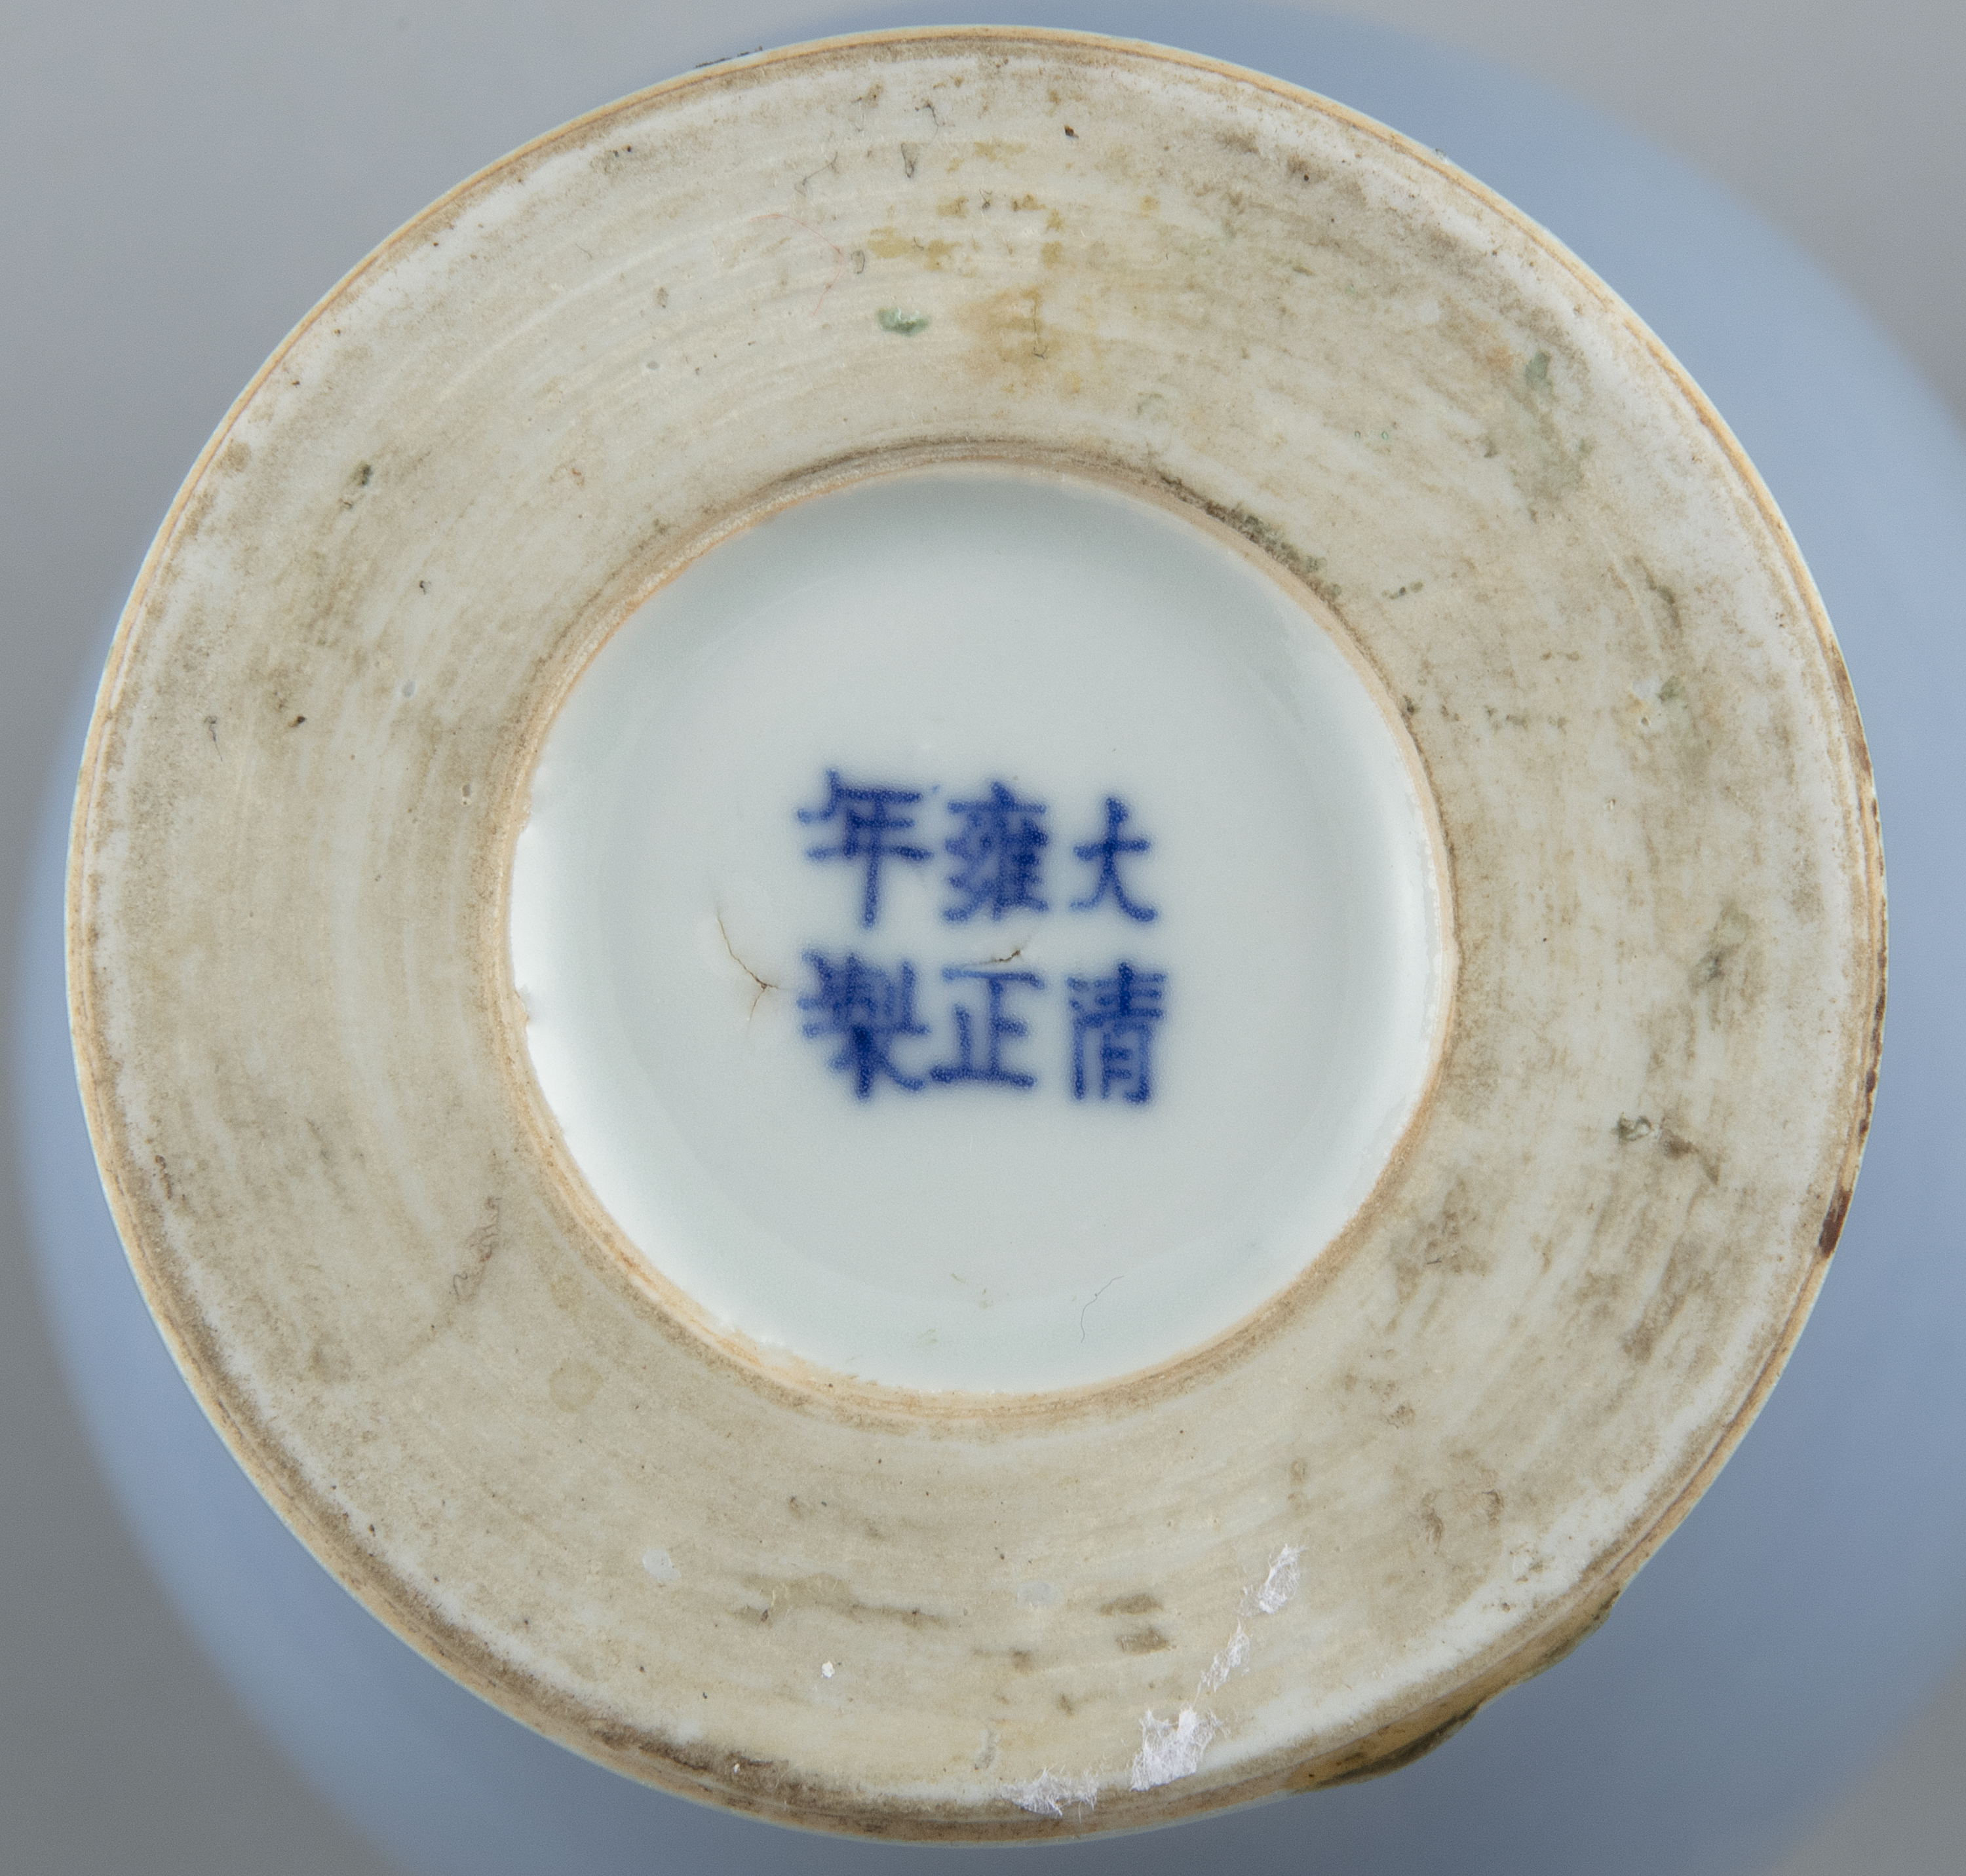 A CLAIR DE LUNE GLAZED PORCELAIN MEIPING VASE China, Qing Dynasty The below inscribed with the - Image 8 of 11